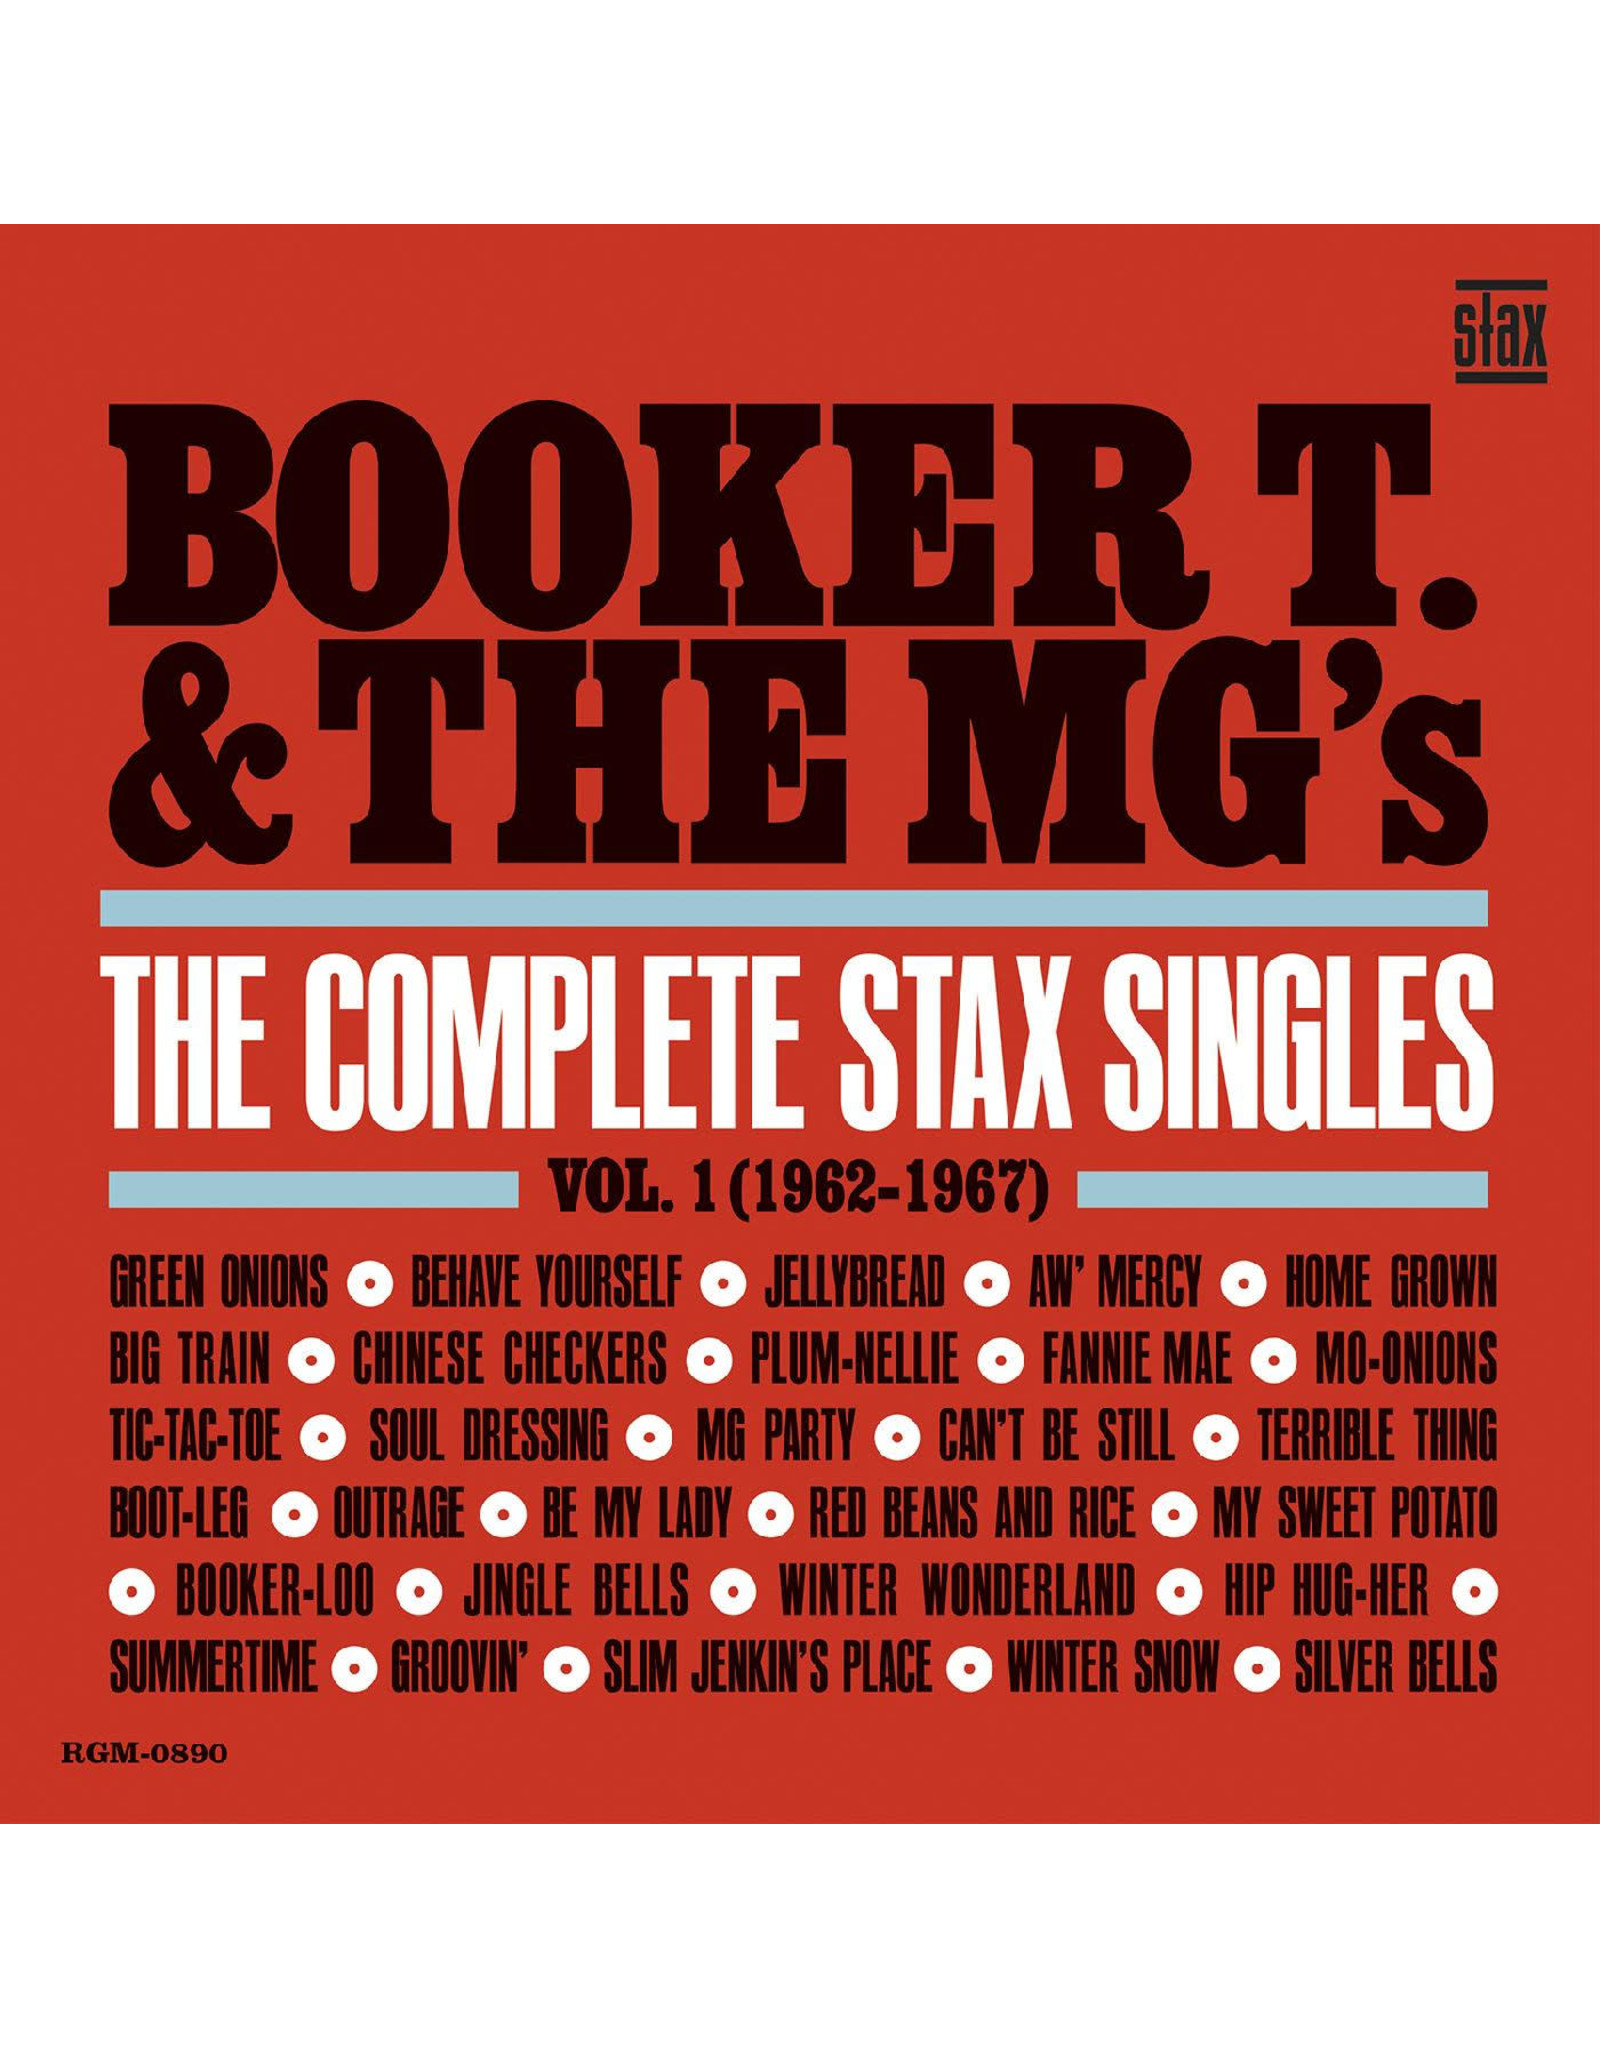 New Vinyl Booker T. & The MG's - The Complete Stax Singles Vol. 1: 1962-1967 (Colored) 2LP